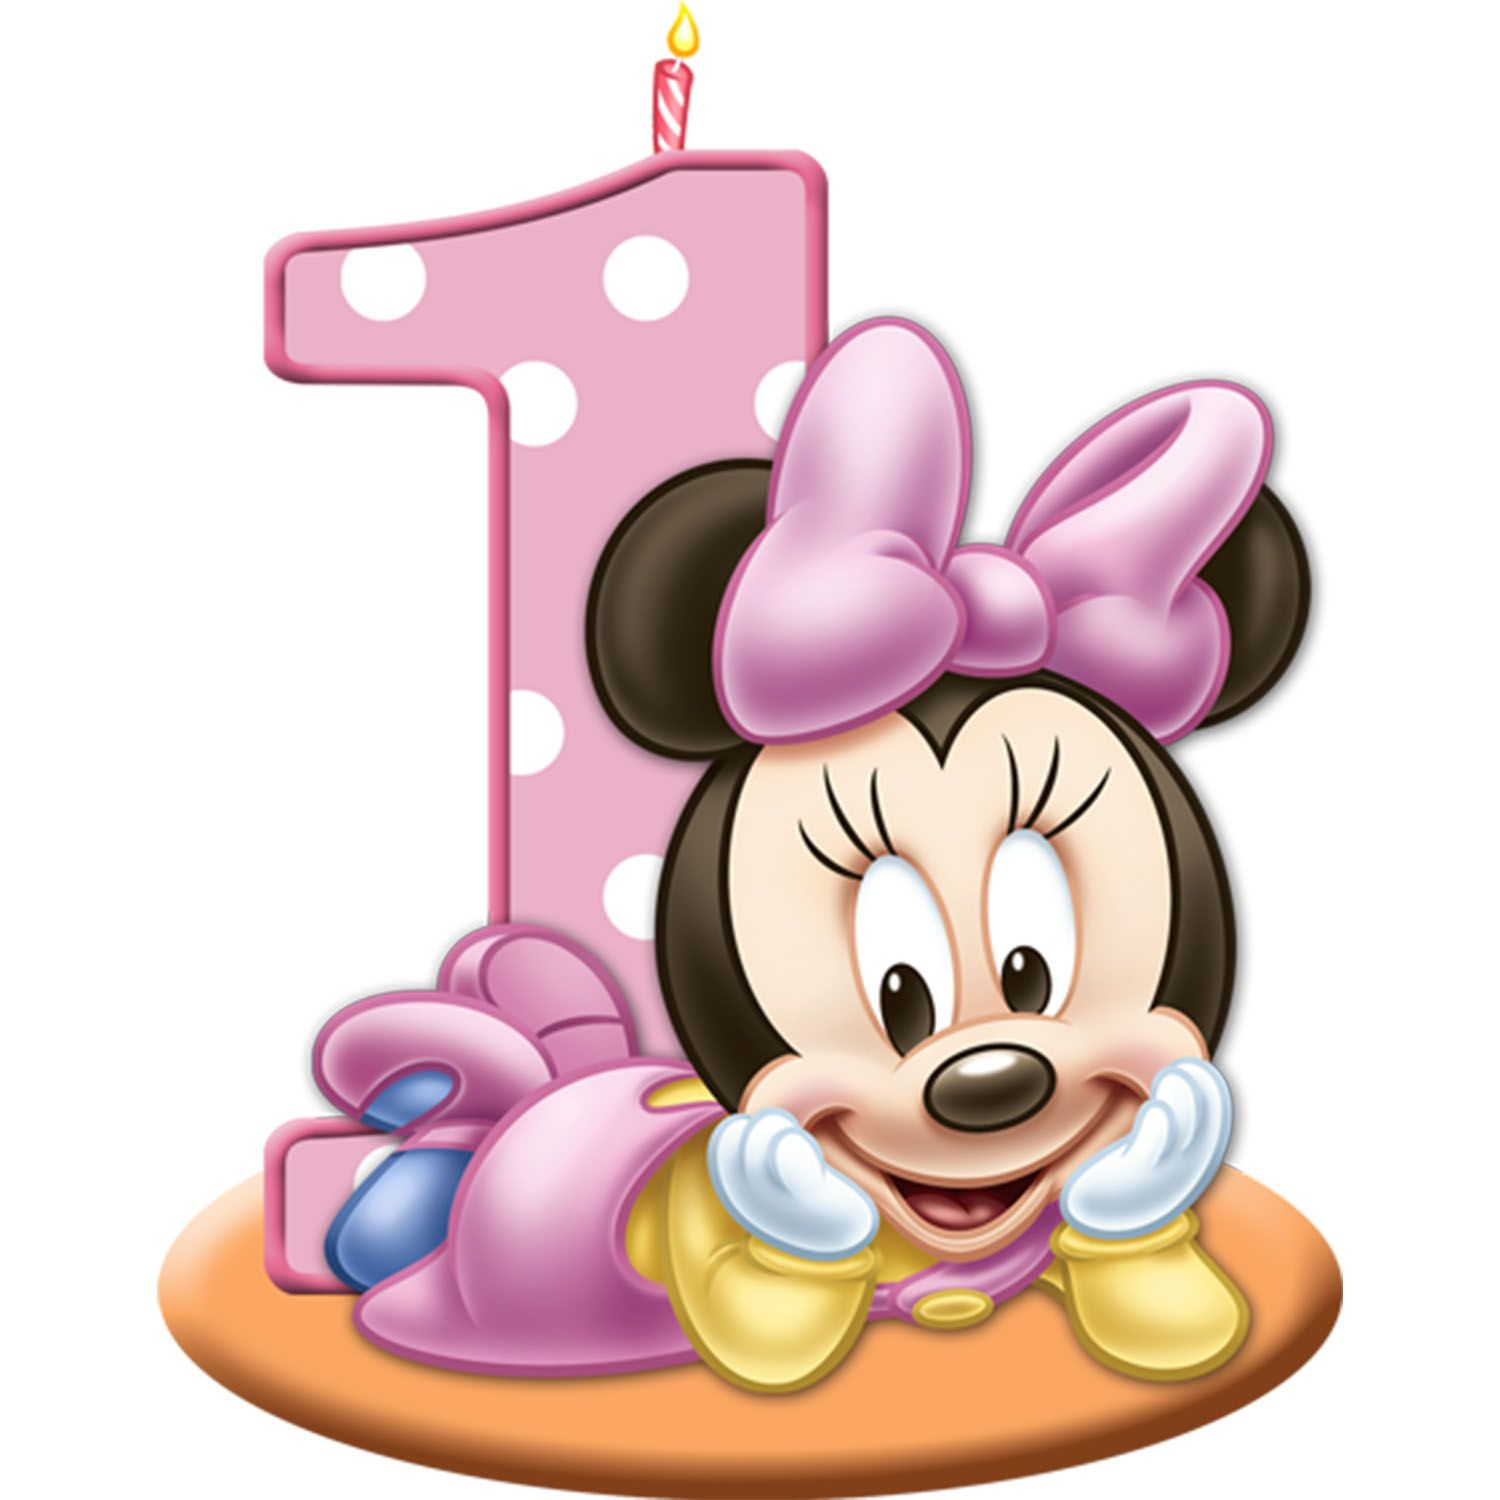 Minnie Mouse First Birthday Party Via Little Wish Parties: Your Baby Girl Is Turning One, Now It's Time To Start